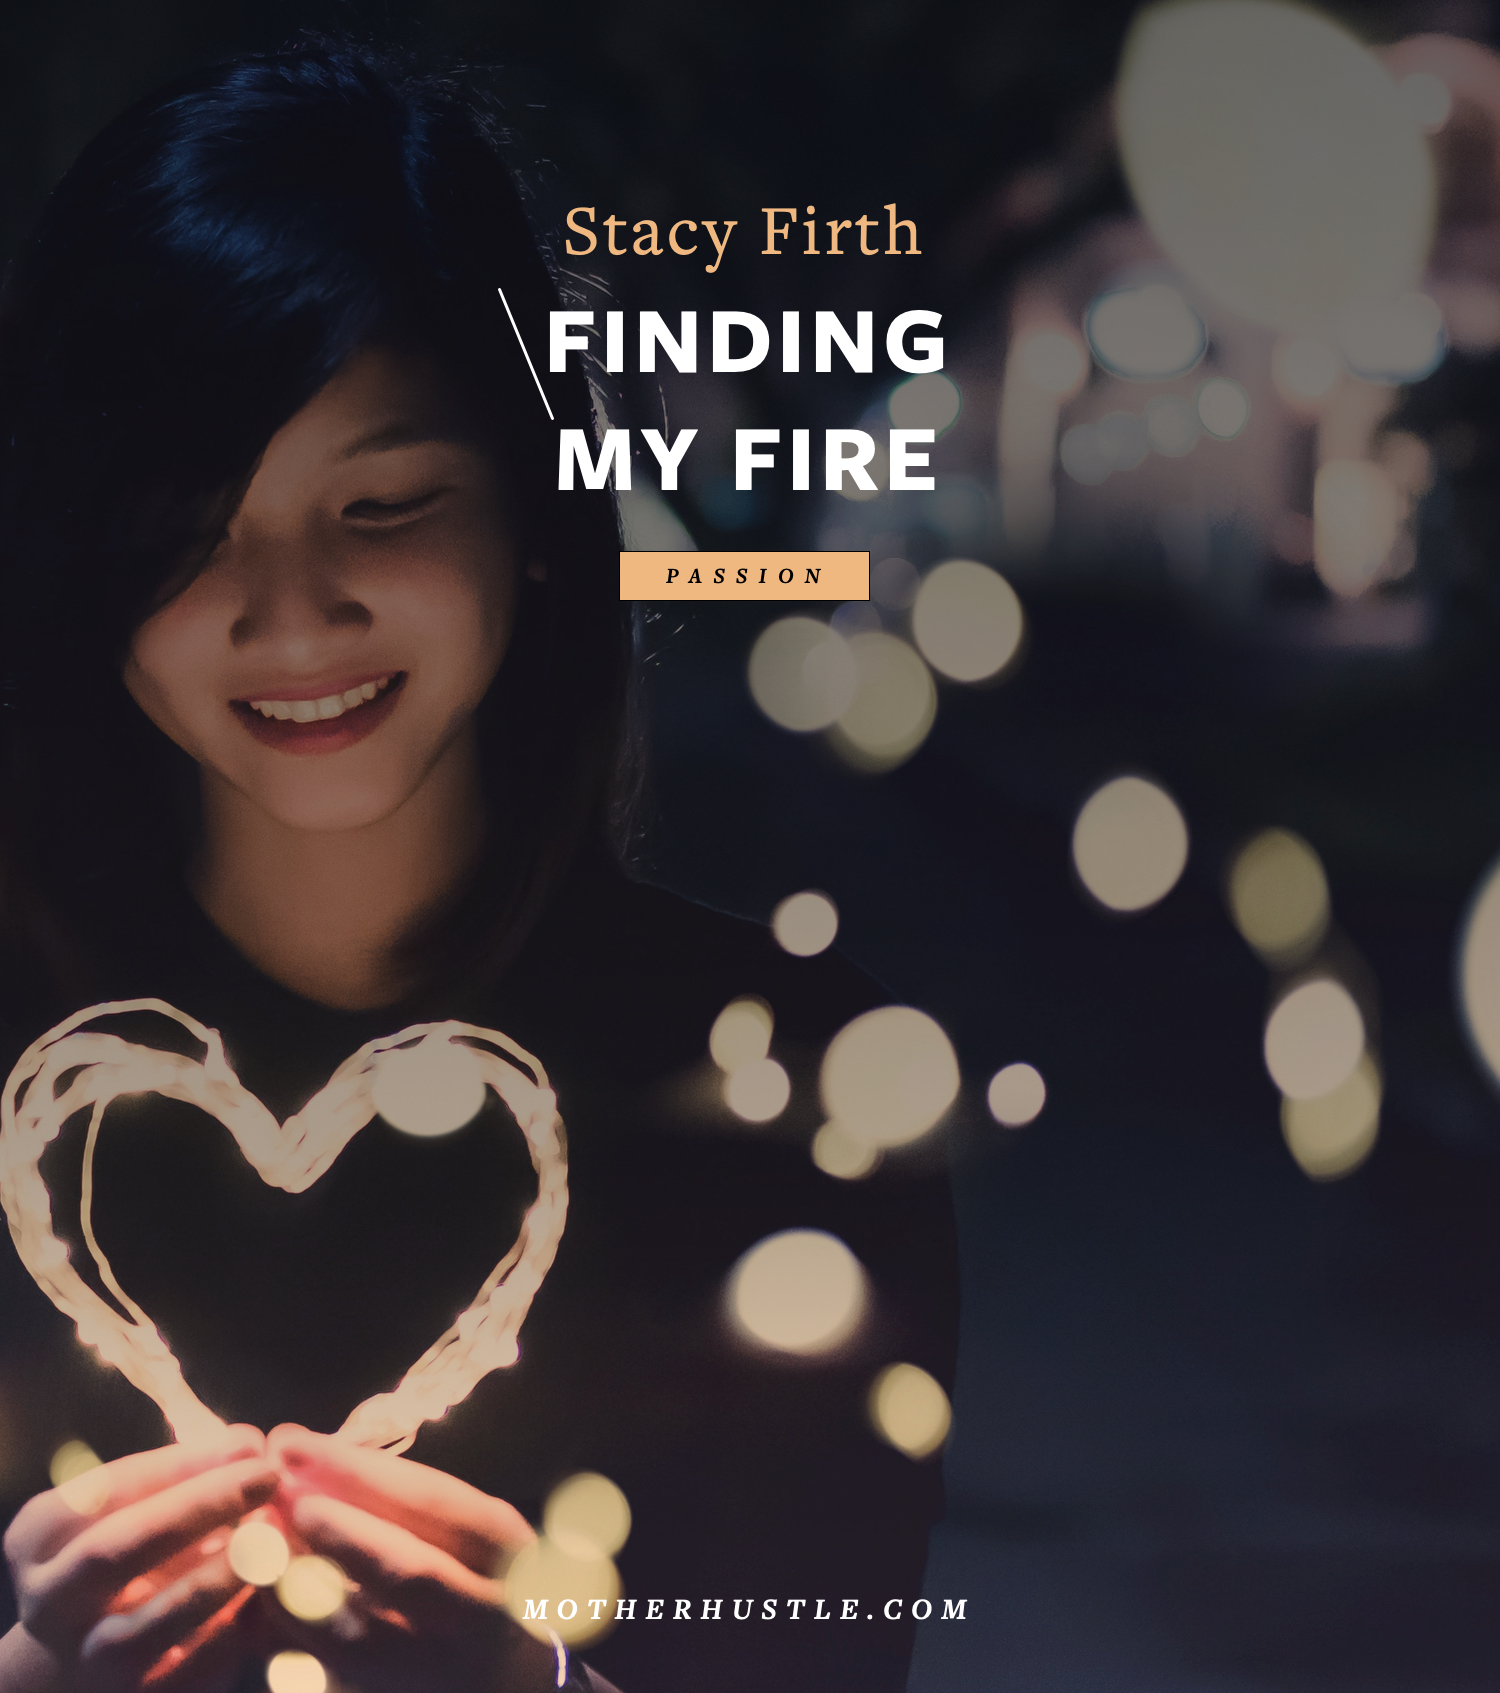 Finding My Fire - by Stacy Firth for MotherHustle